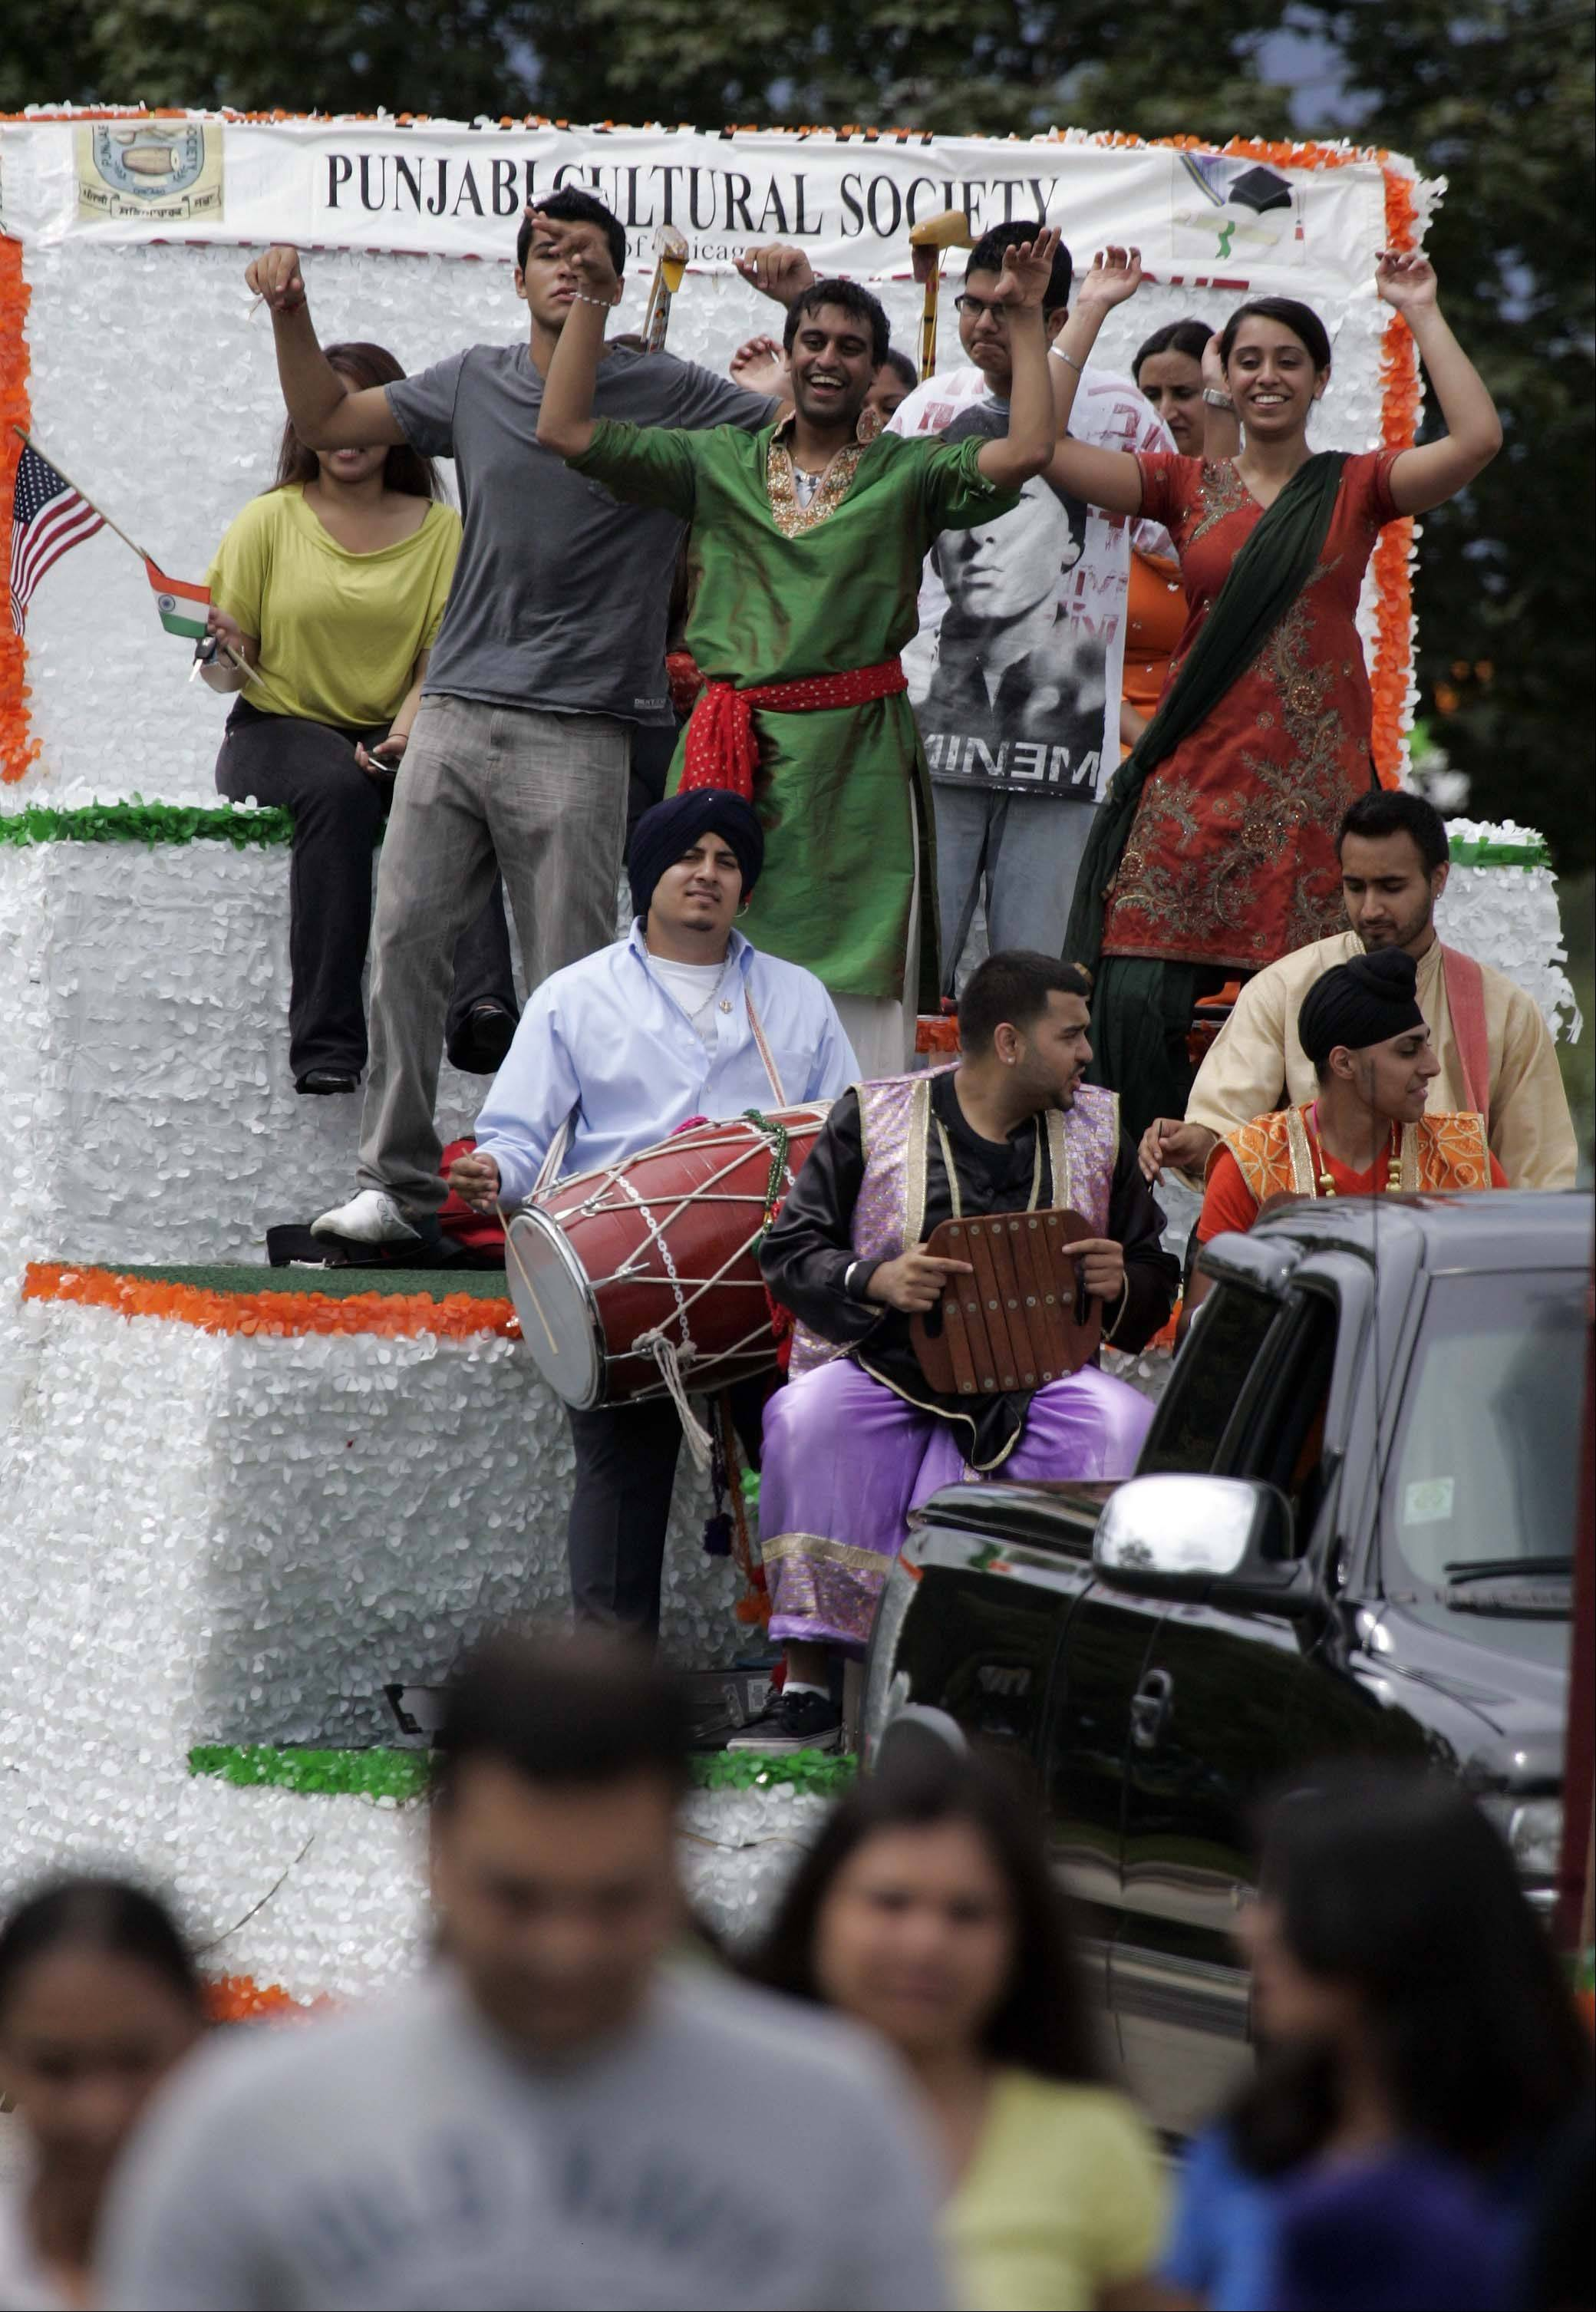 First suburban celebration of India independence held in suburbs